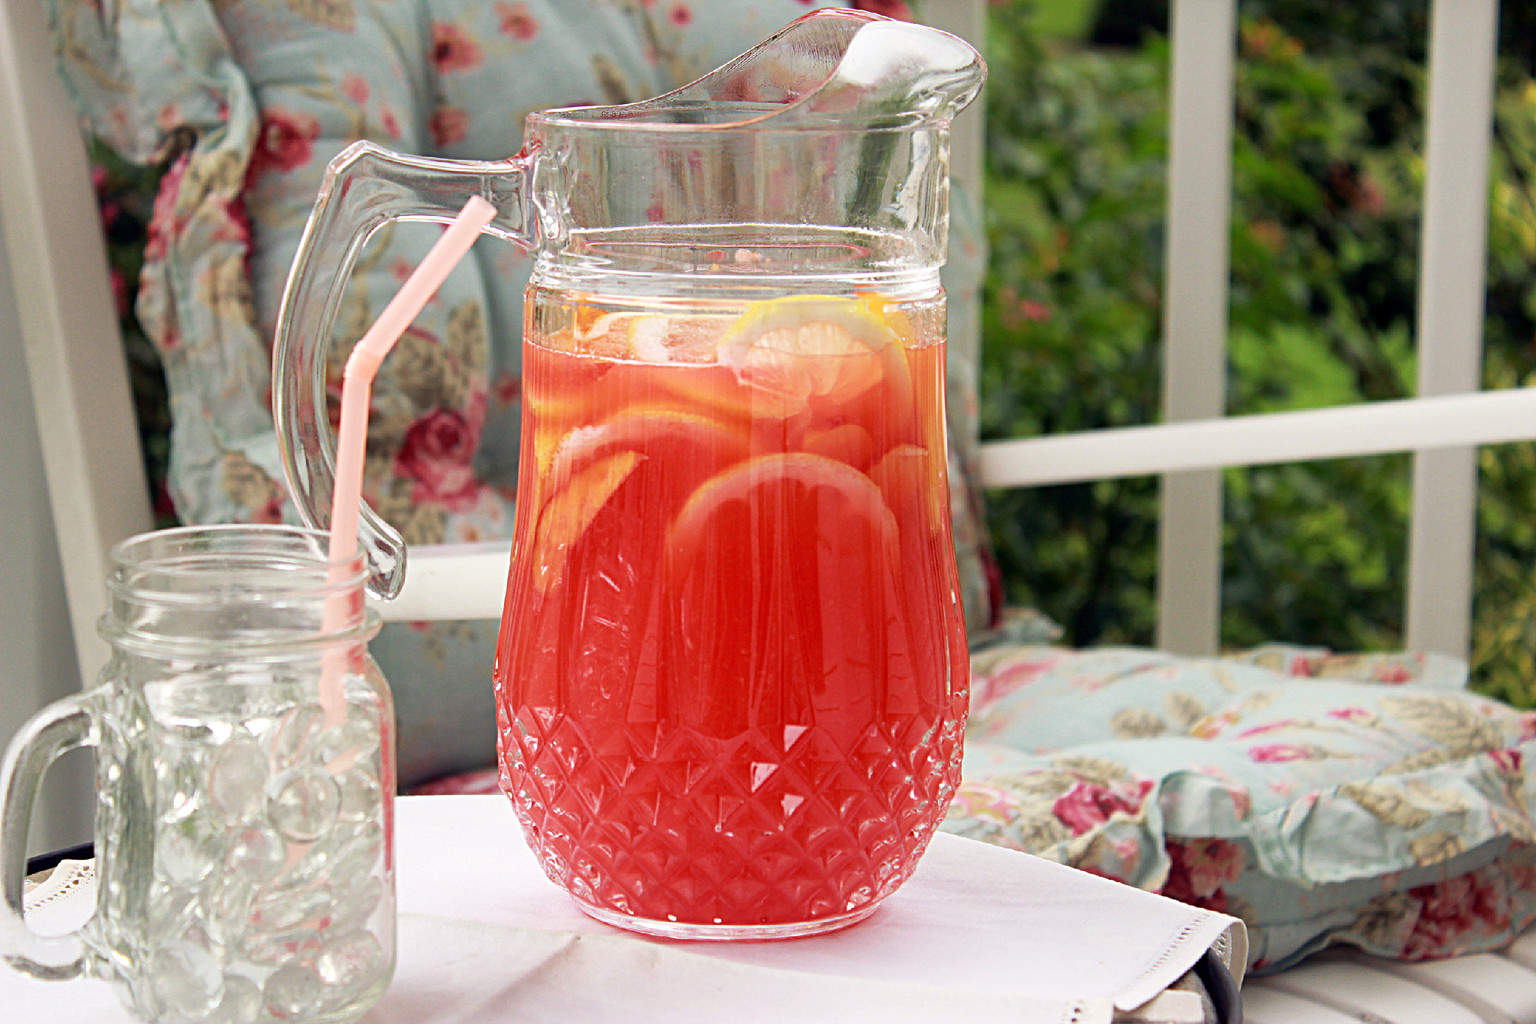 Rosemary Peach Lemonade